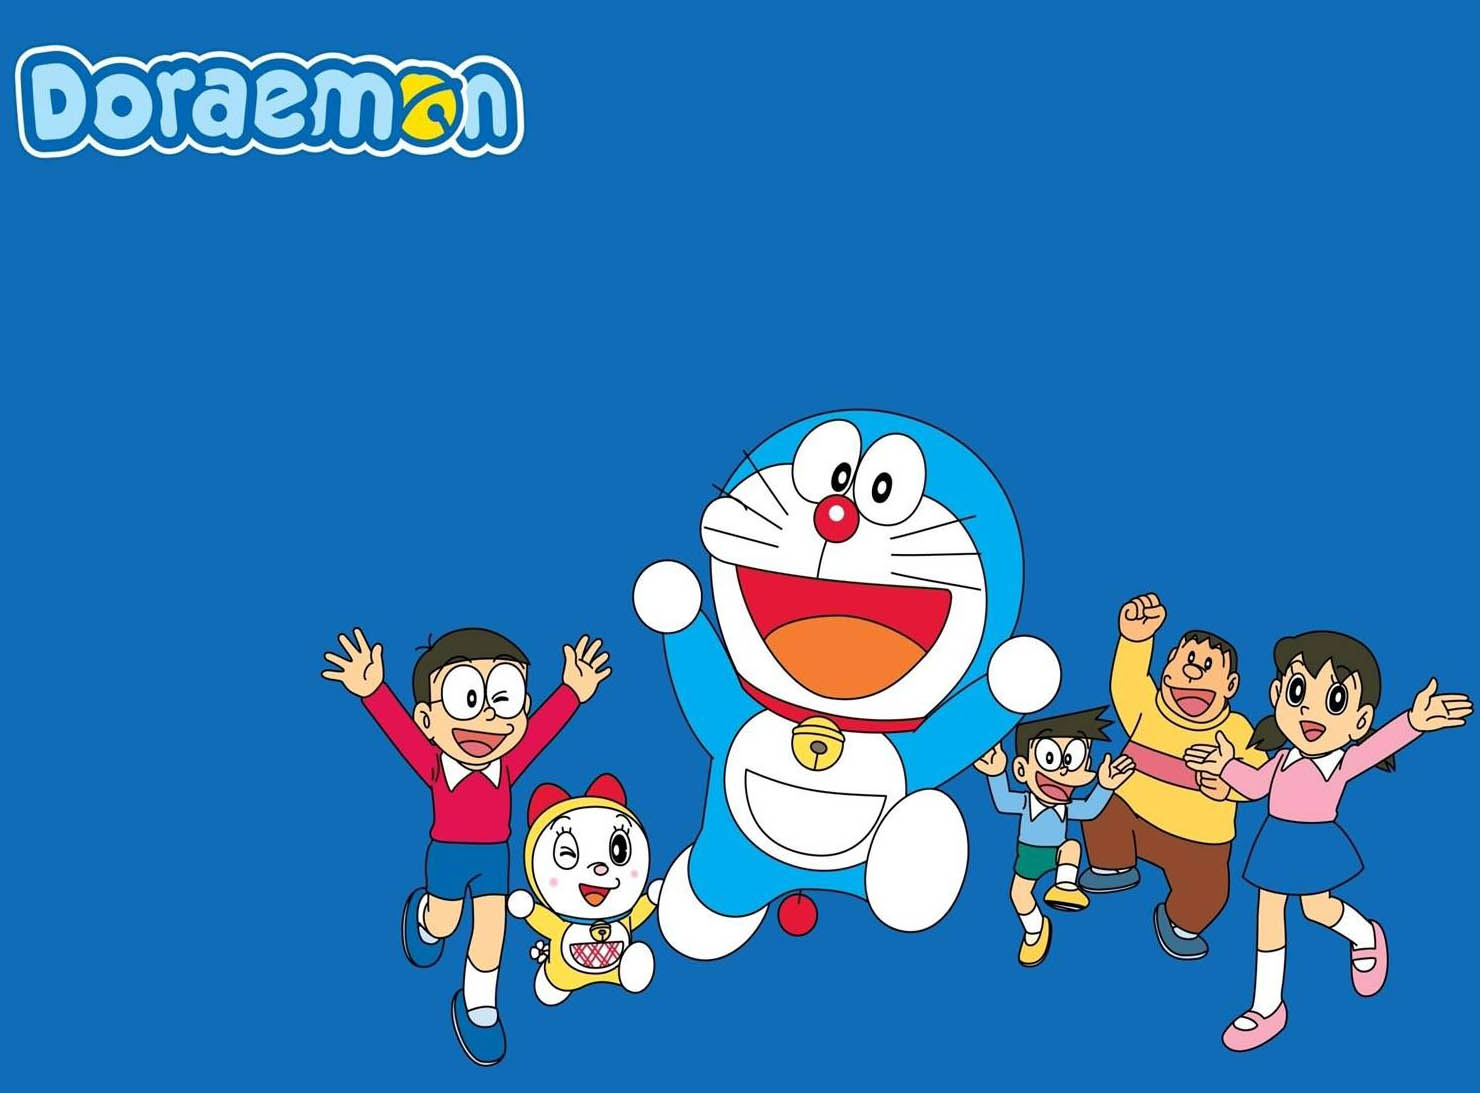 Doraemon Wallpaper Funny Cute